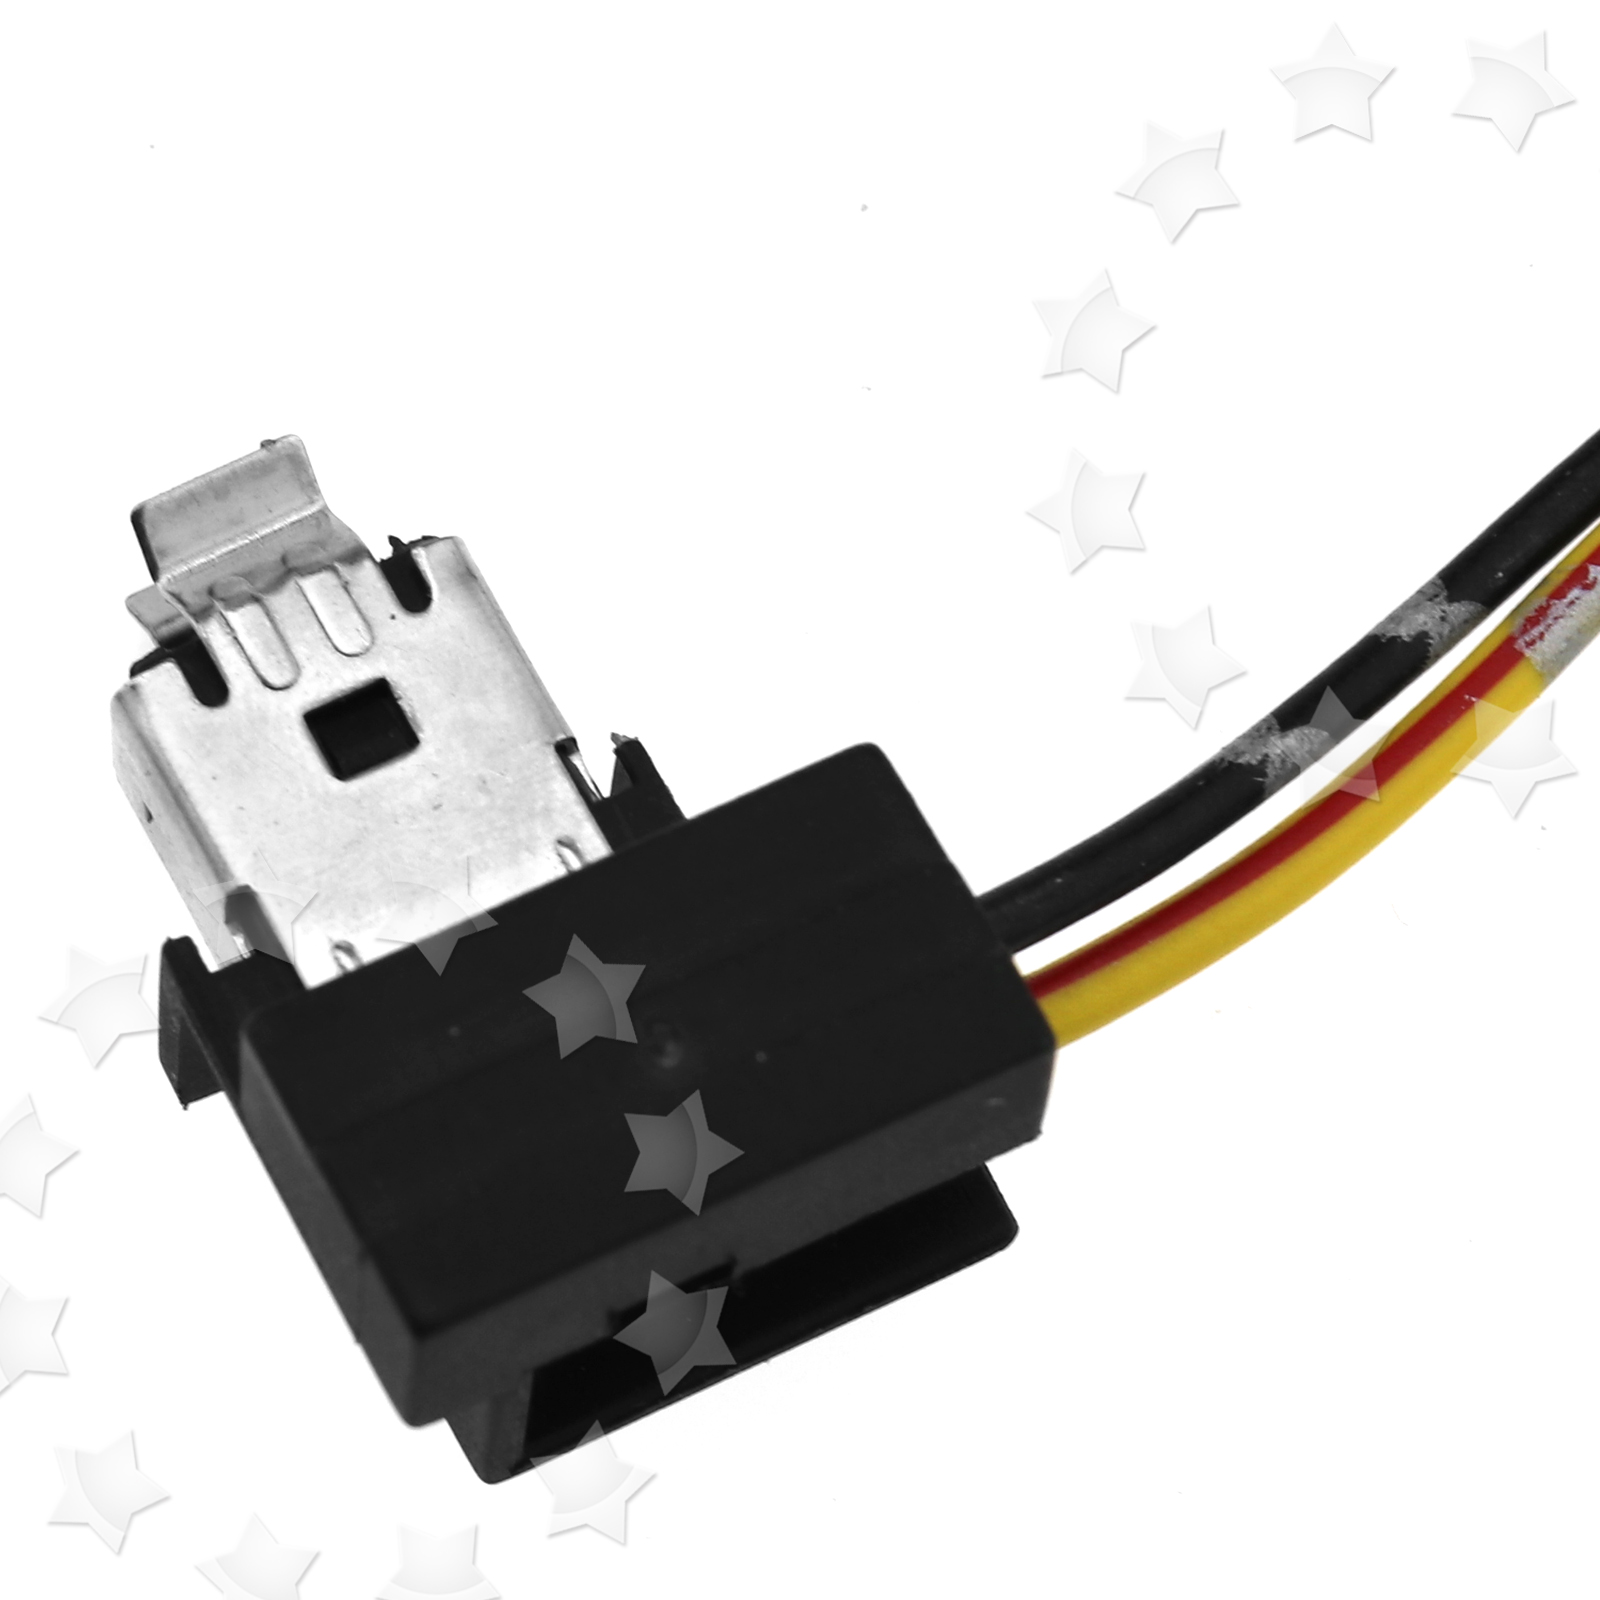 h1 bulb wiring 9007 bulb wiring into h1 12v h1 head fog lamp light bulb socket holder wiring ...